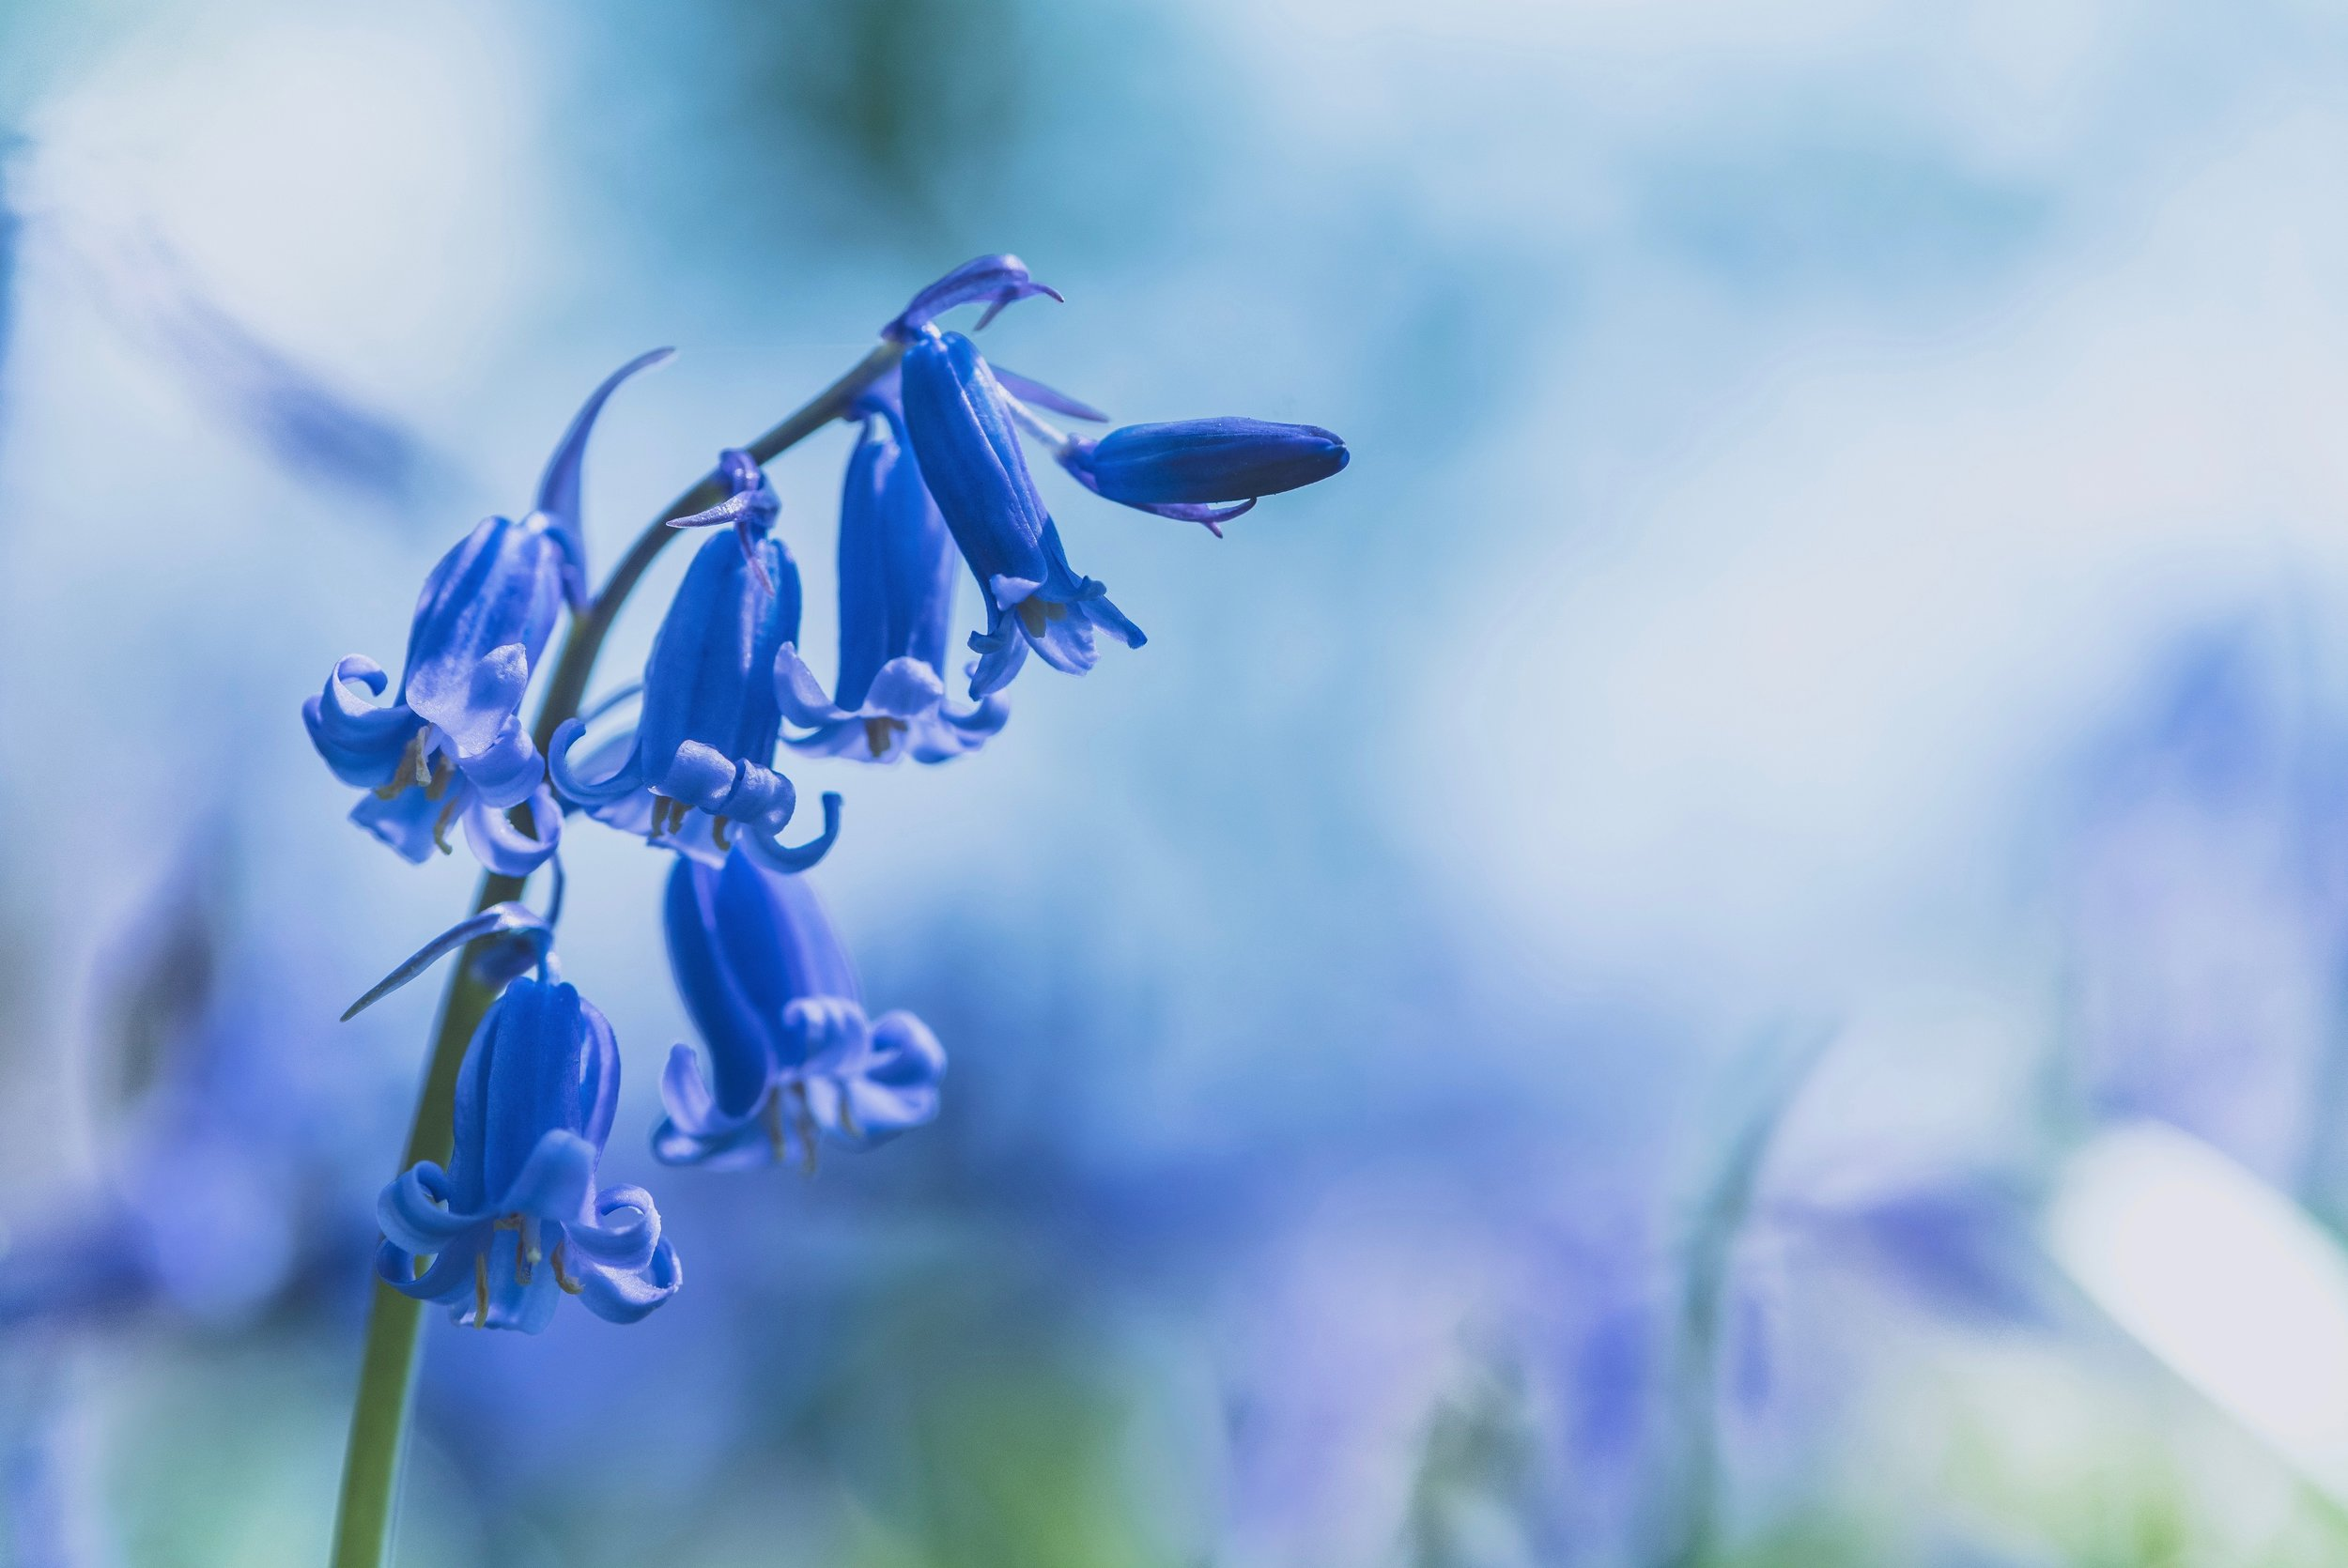 List of spring flowers scotland bluebells1.jpg